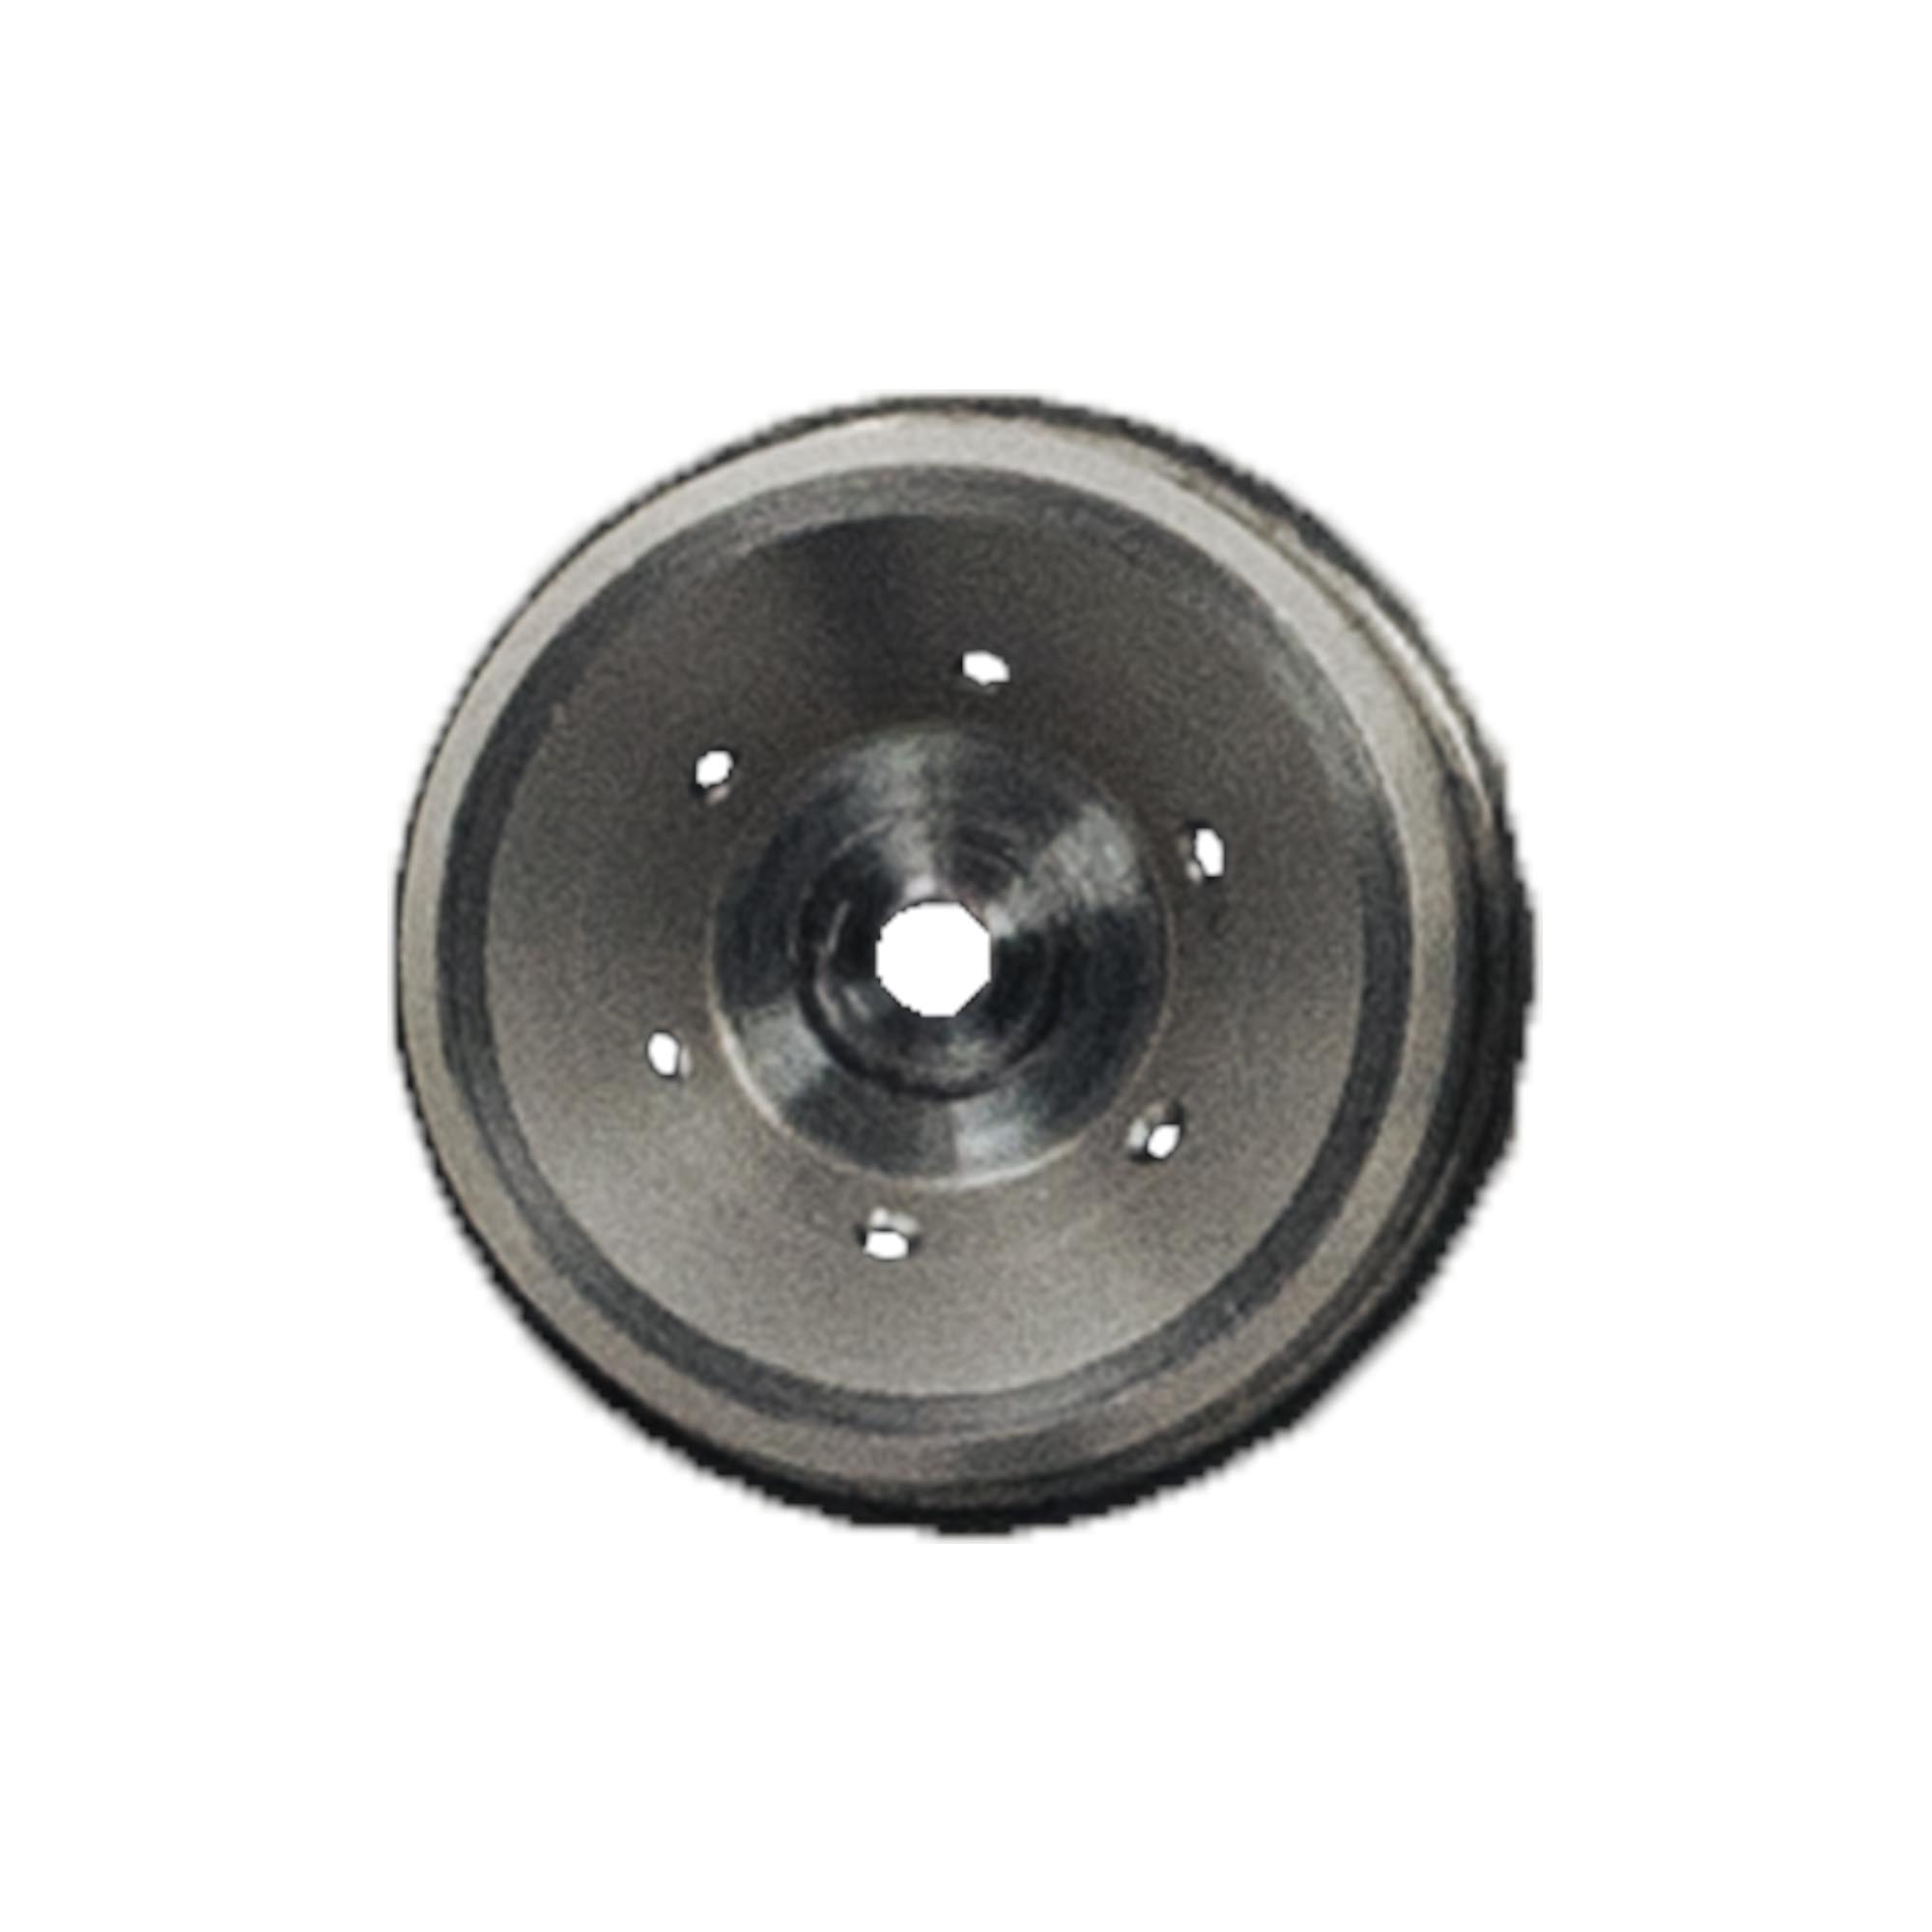 Model 901203-R10 Air Cap for ER1010SS